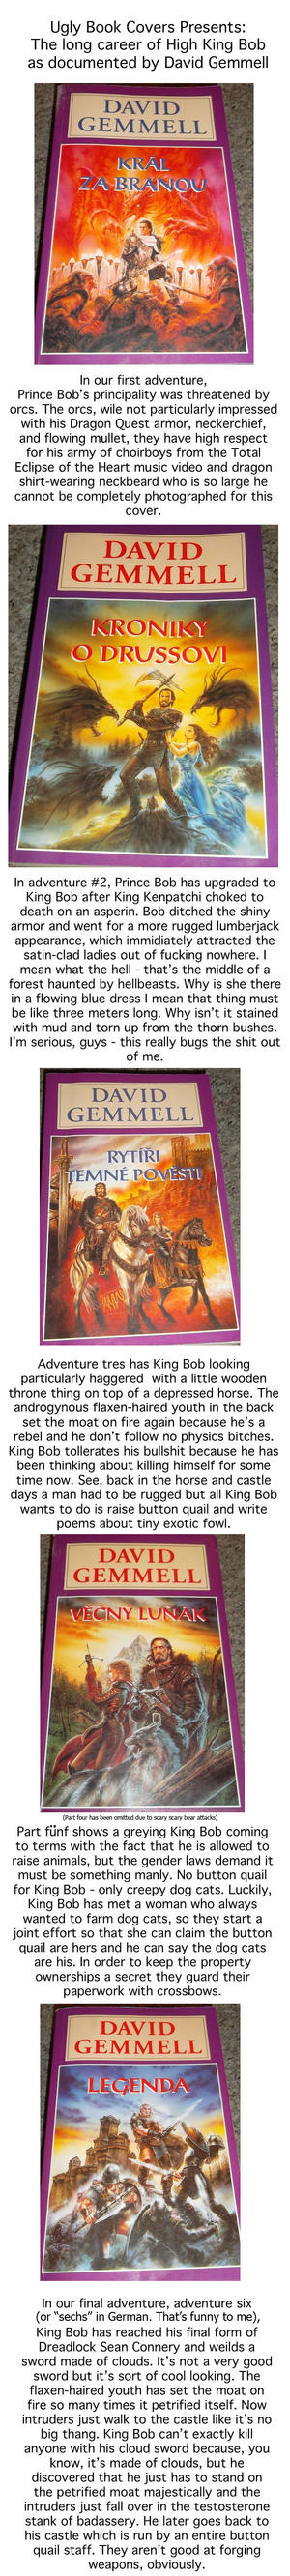 Ugly Book Cover Art : Ugly book covers king bob by romanjones on deviantart